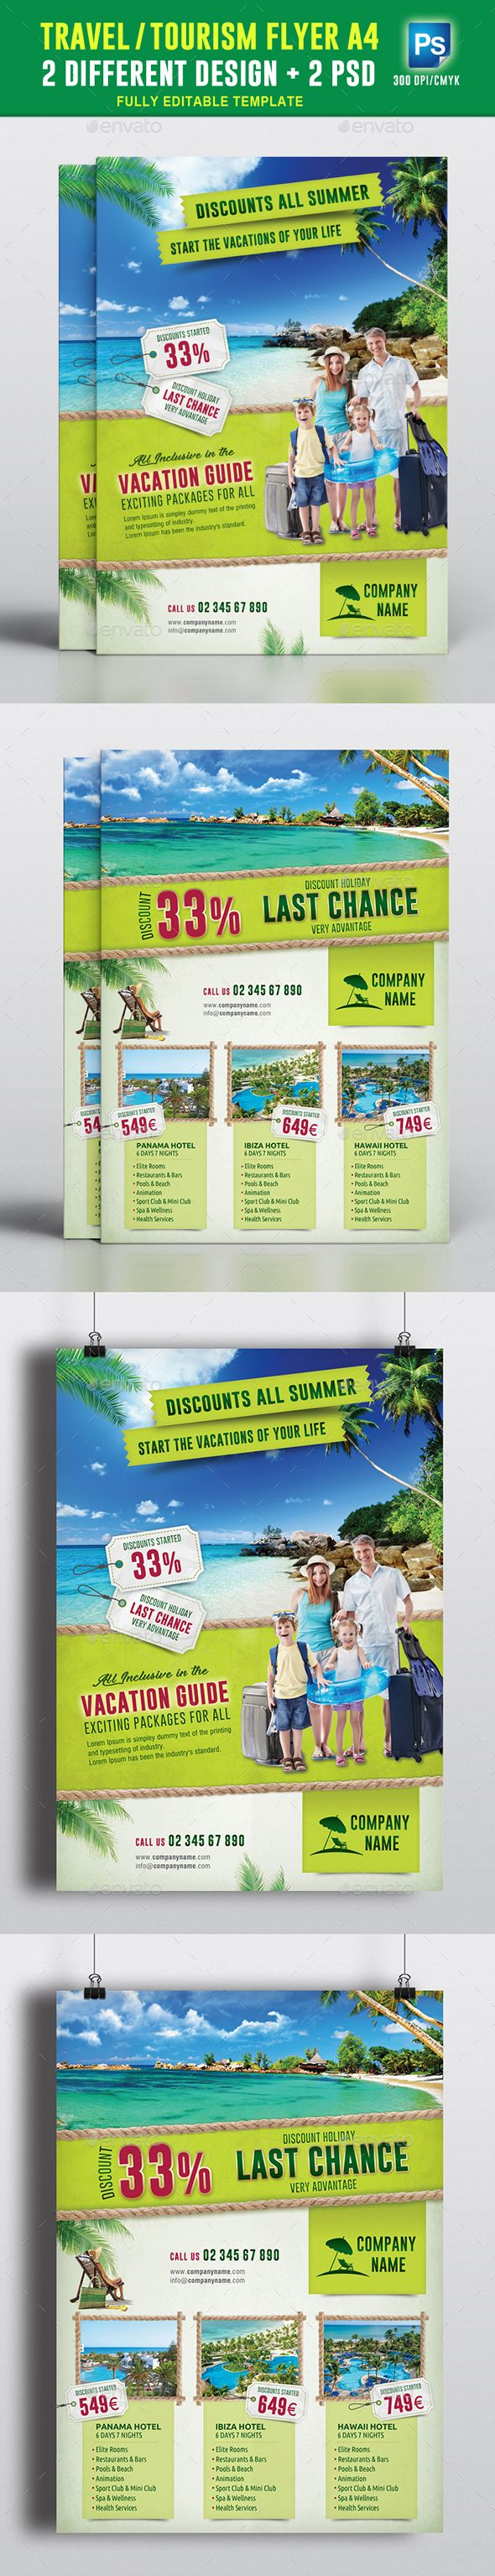 Travel Tourism Flyer Vol Tourism Flyer Template And Template - Tourism flyer template